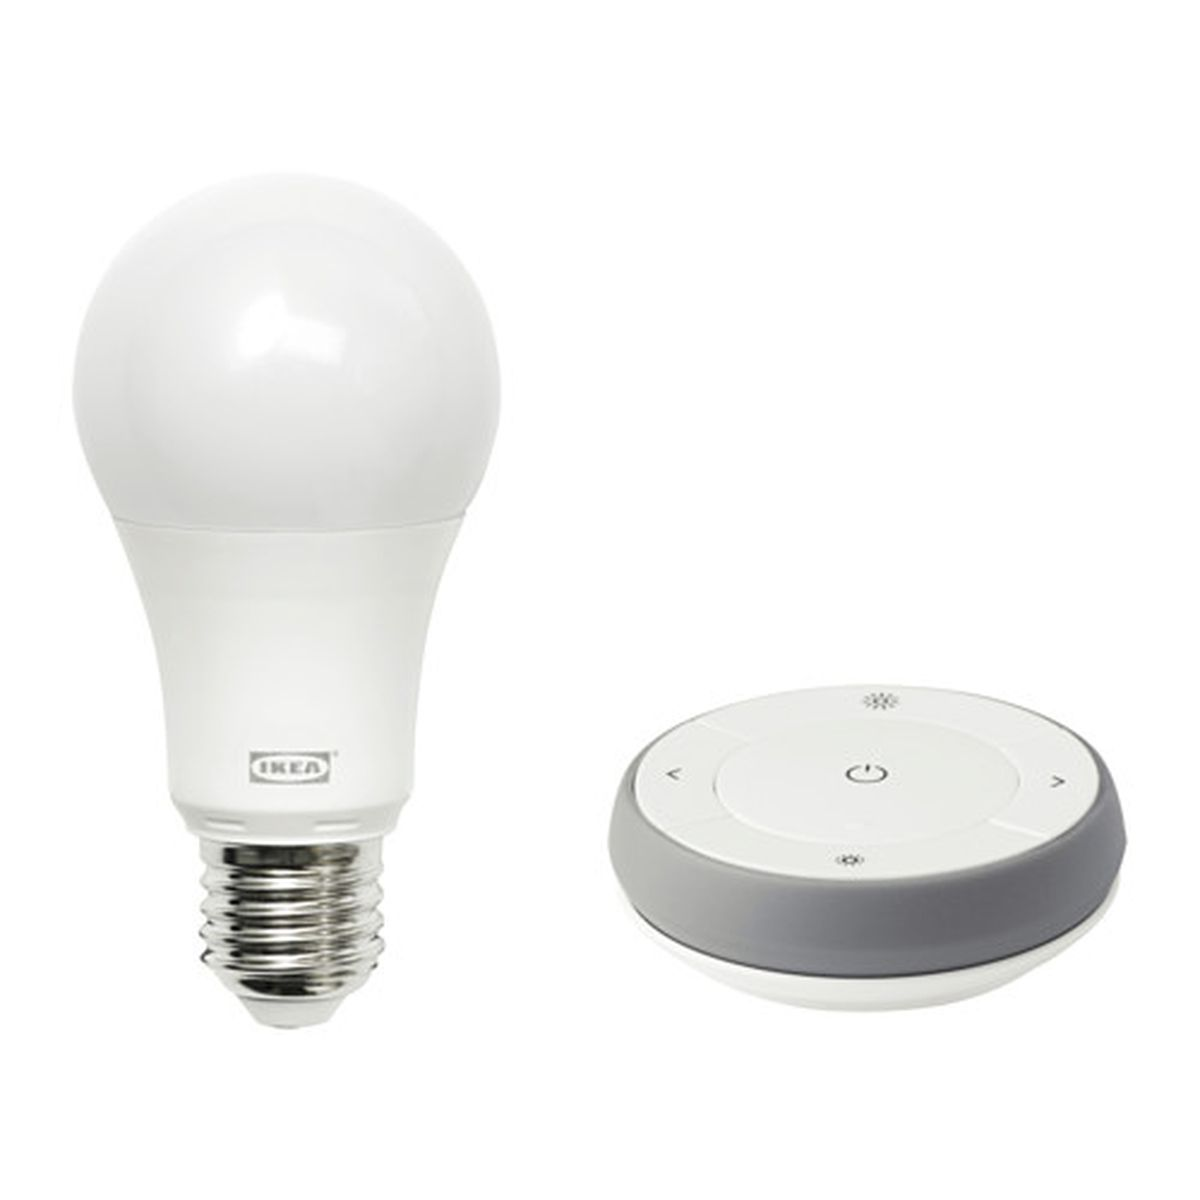 ikea 39 s multi color smart bulbs are now widely available the verge. Black Bedroom Furniture Sets. Home Design Ideas